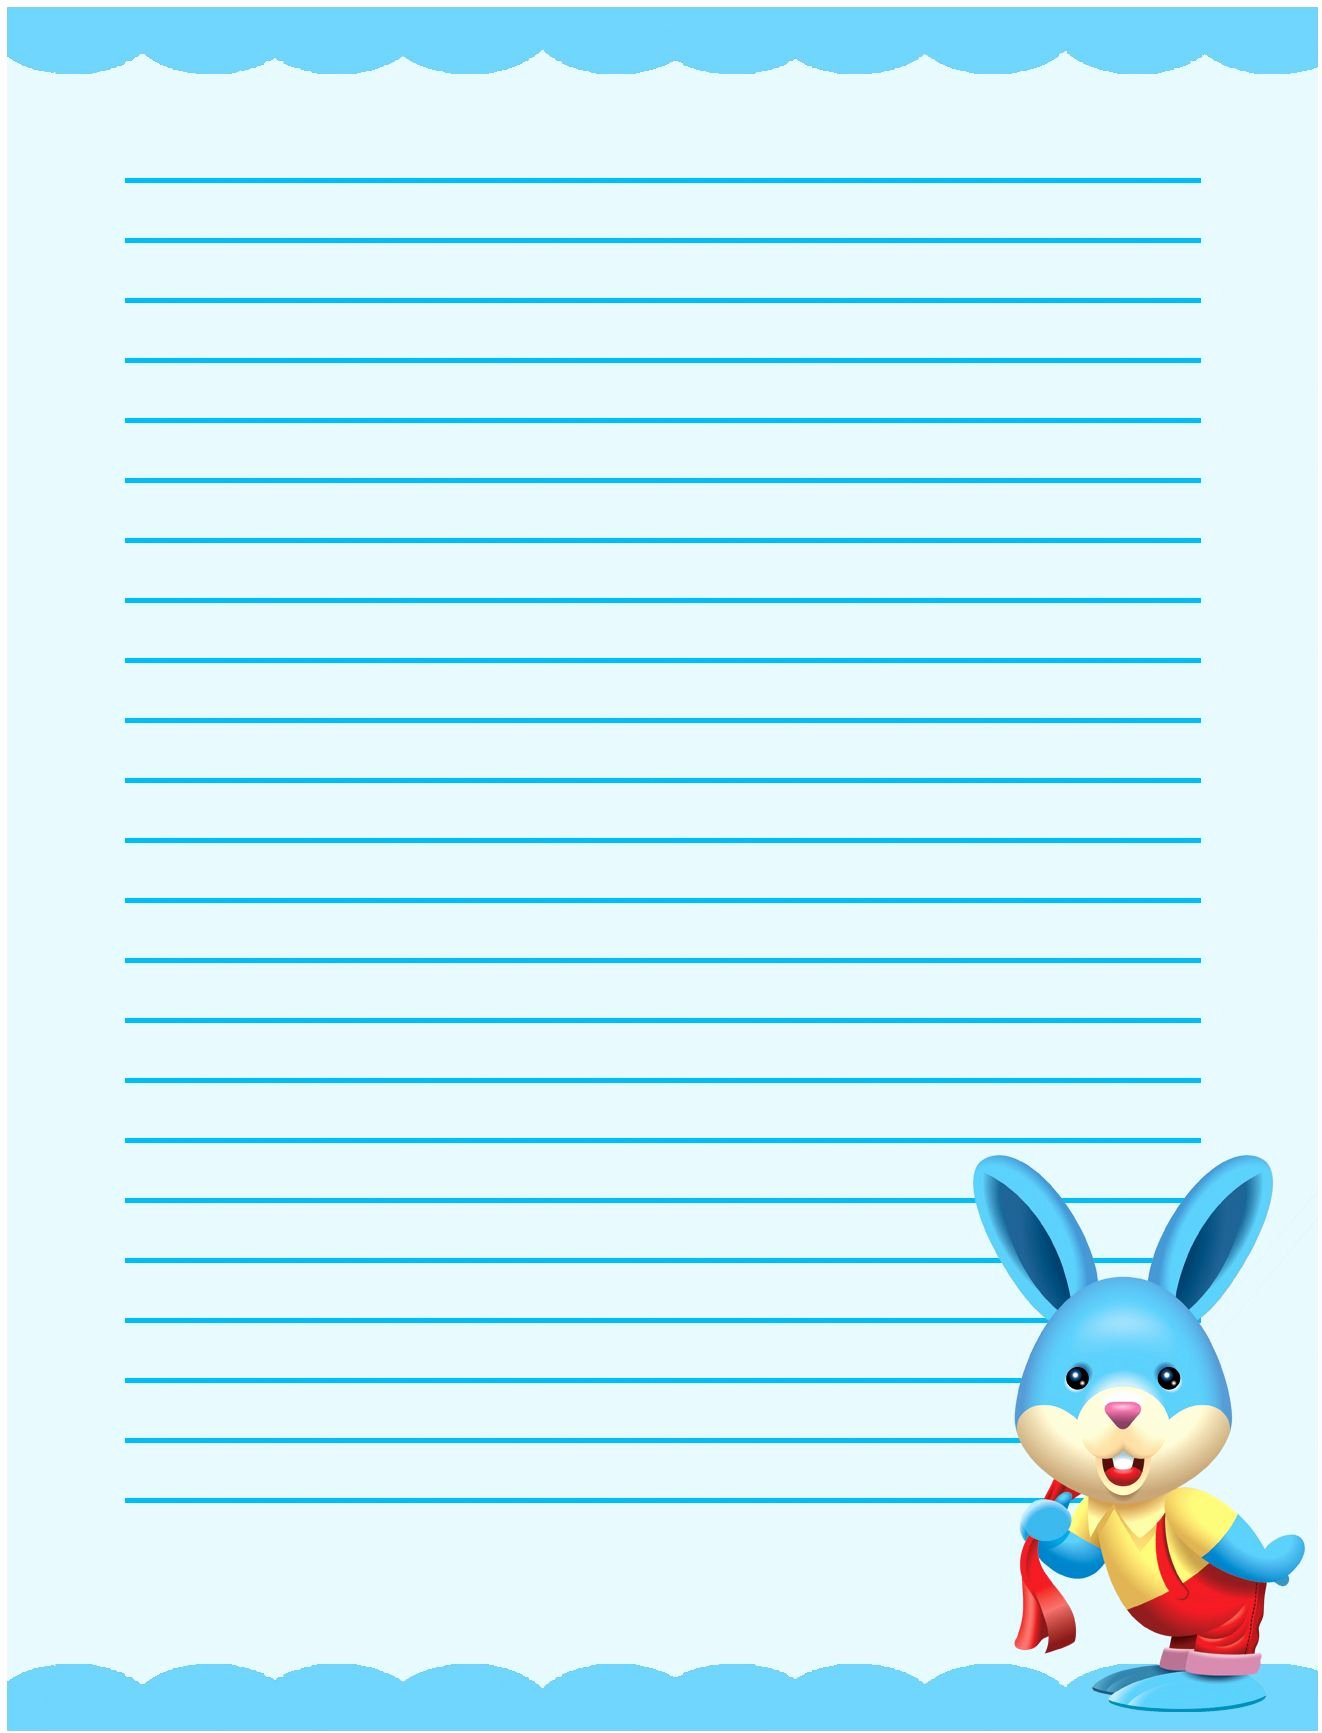 Printable Lined Stationery Paper Awesome Free Printable Writing Paper Free Stationery Templates